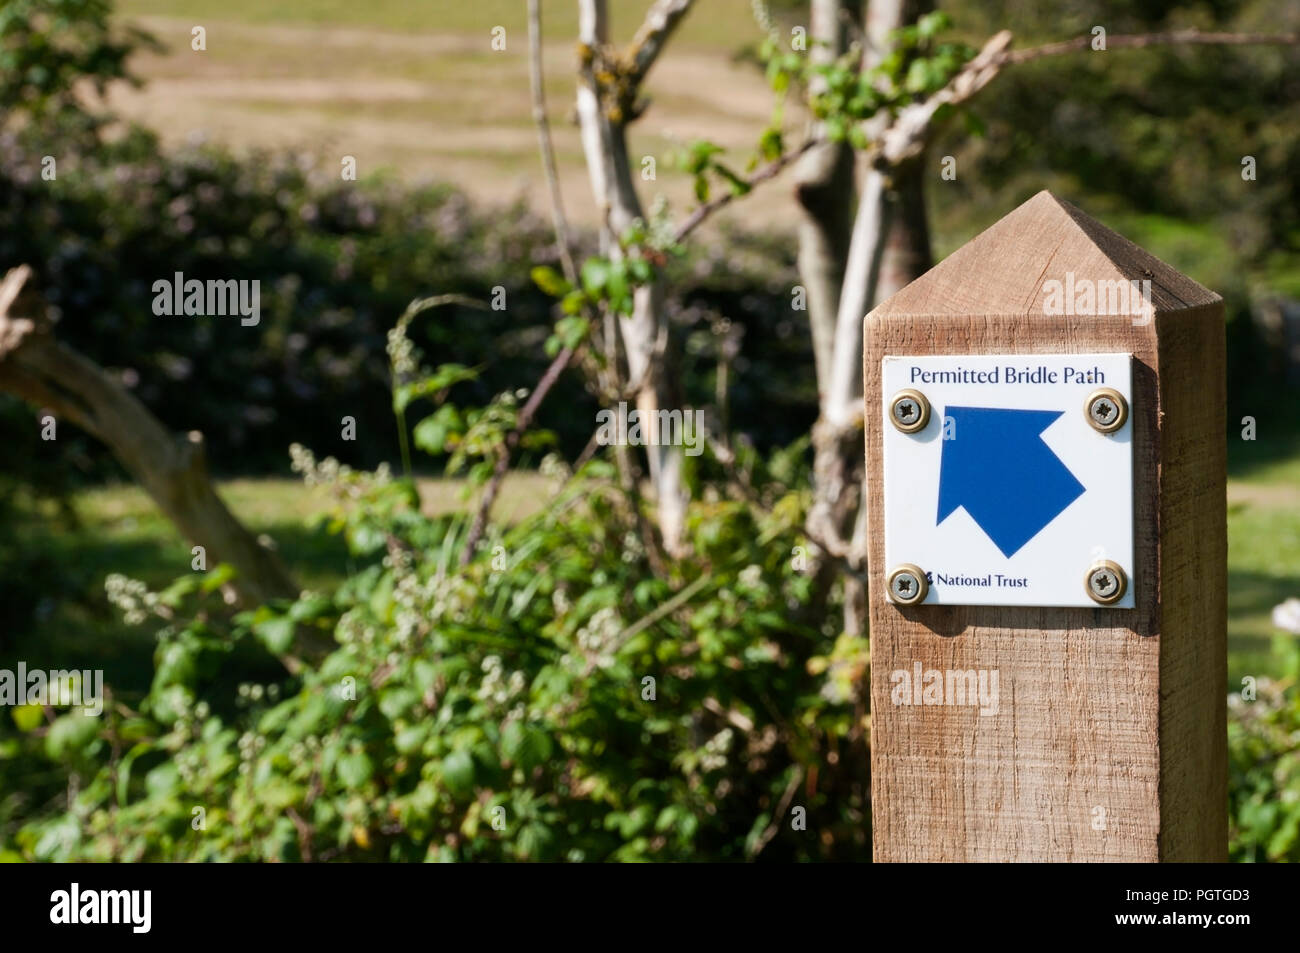 A sign on a wooden post shows an arrow pointing to a Permitted Bridle Path. - Stock Image